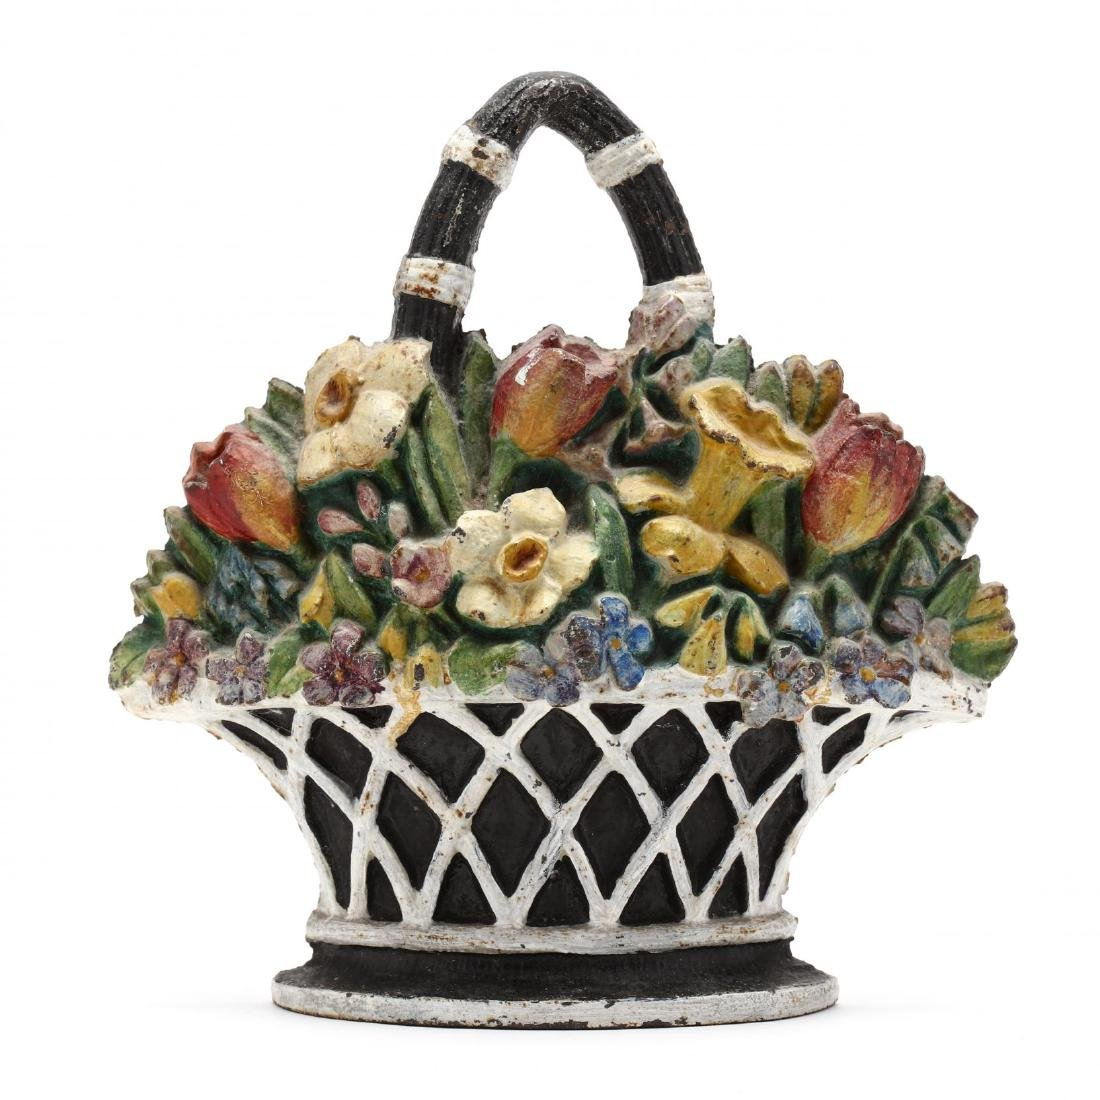 A Large Vintage Cast Iron Floral Doorstop